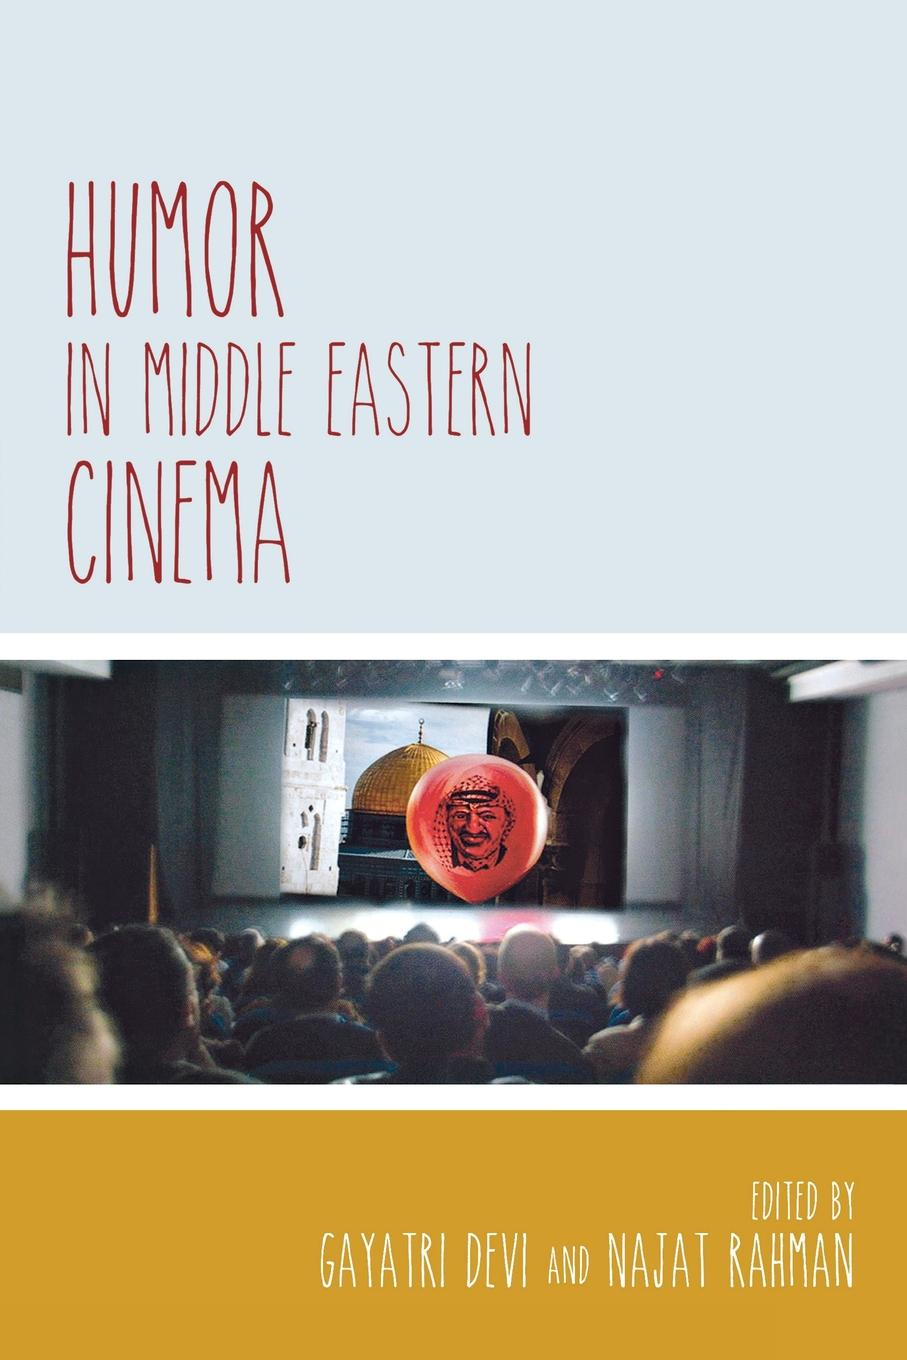 Humor in Middle Eastern Cinema literature and cinema